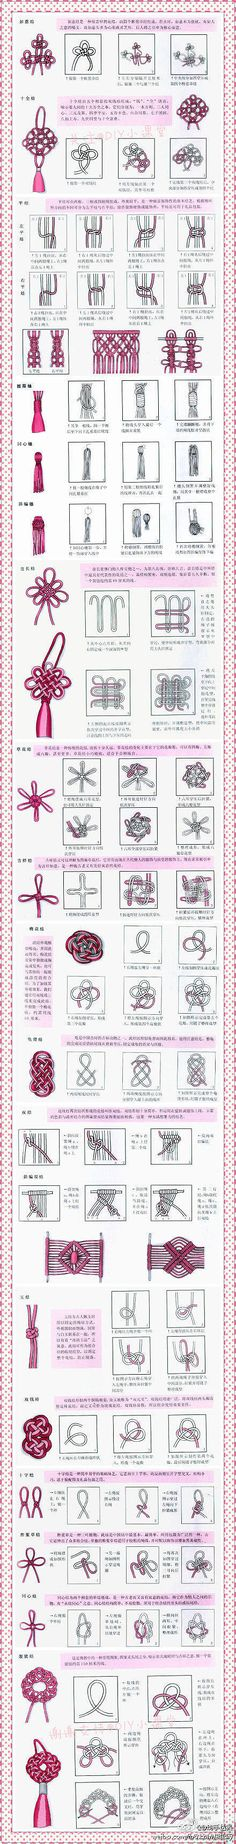 Macrame knots The various Chinese knot weave Collection. Decorative Knots, Bordados E Cia, Do It Yourself Jewelry, Micro Macramé, Passementerie, Macrame Projects, Macrame Tutorial, Macrame Patterns, Macrame Jewelry